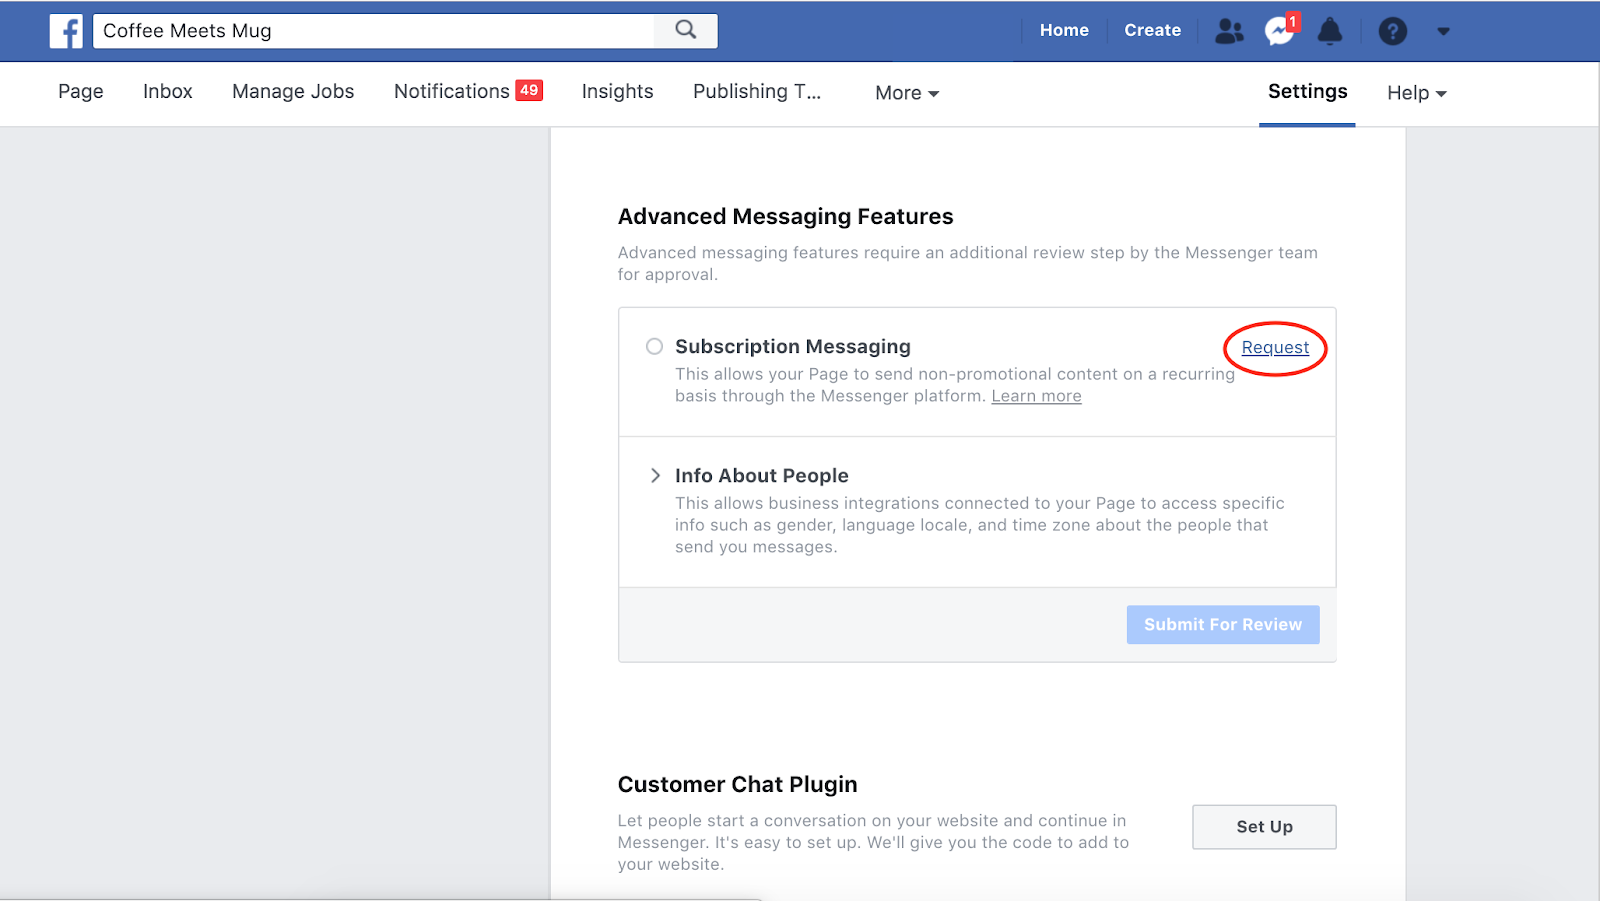 How to request to apply for Facebook Subscription Messaging